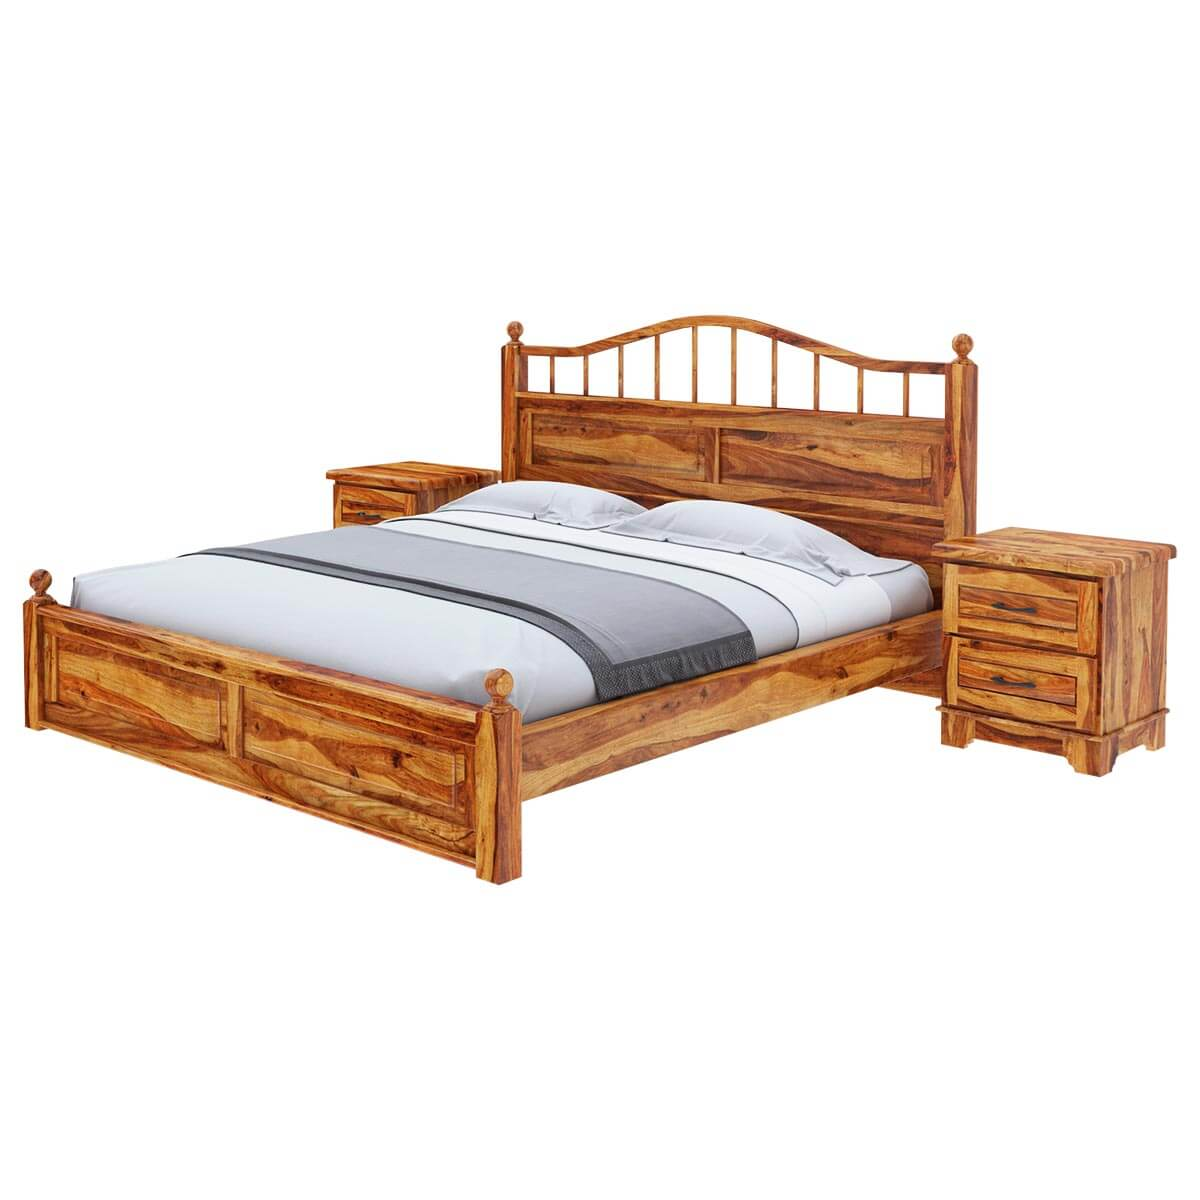 Colonial Rail Top Solid Wood King Size Platform Bed Frame